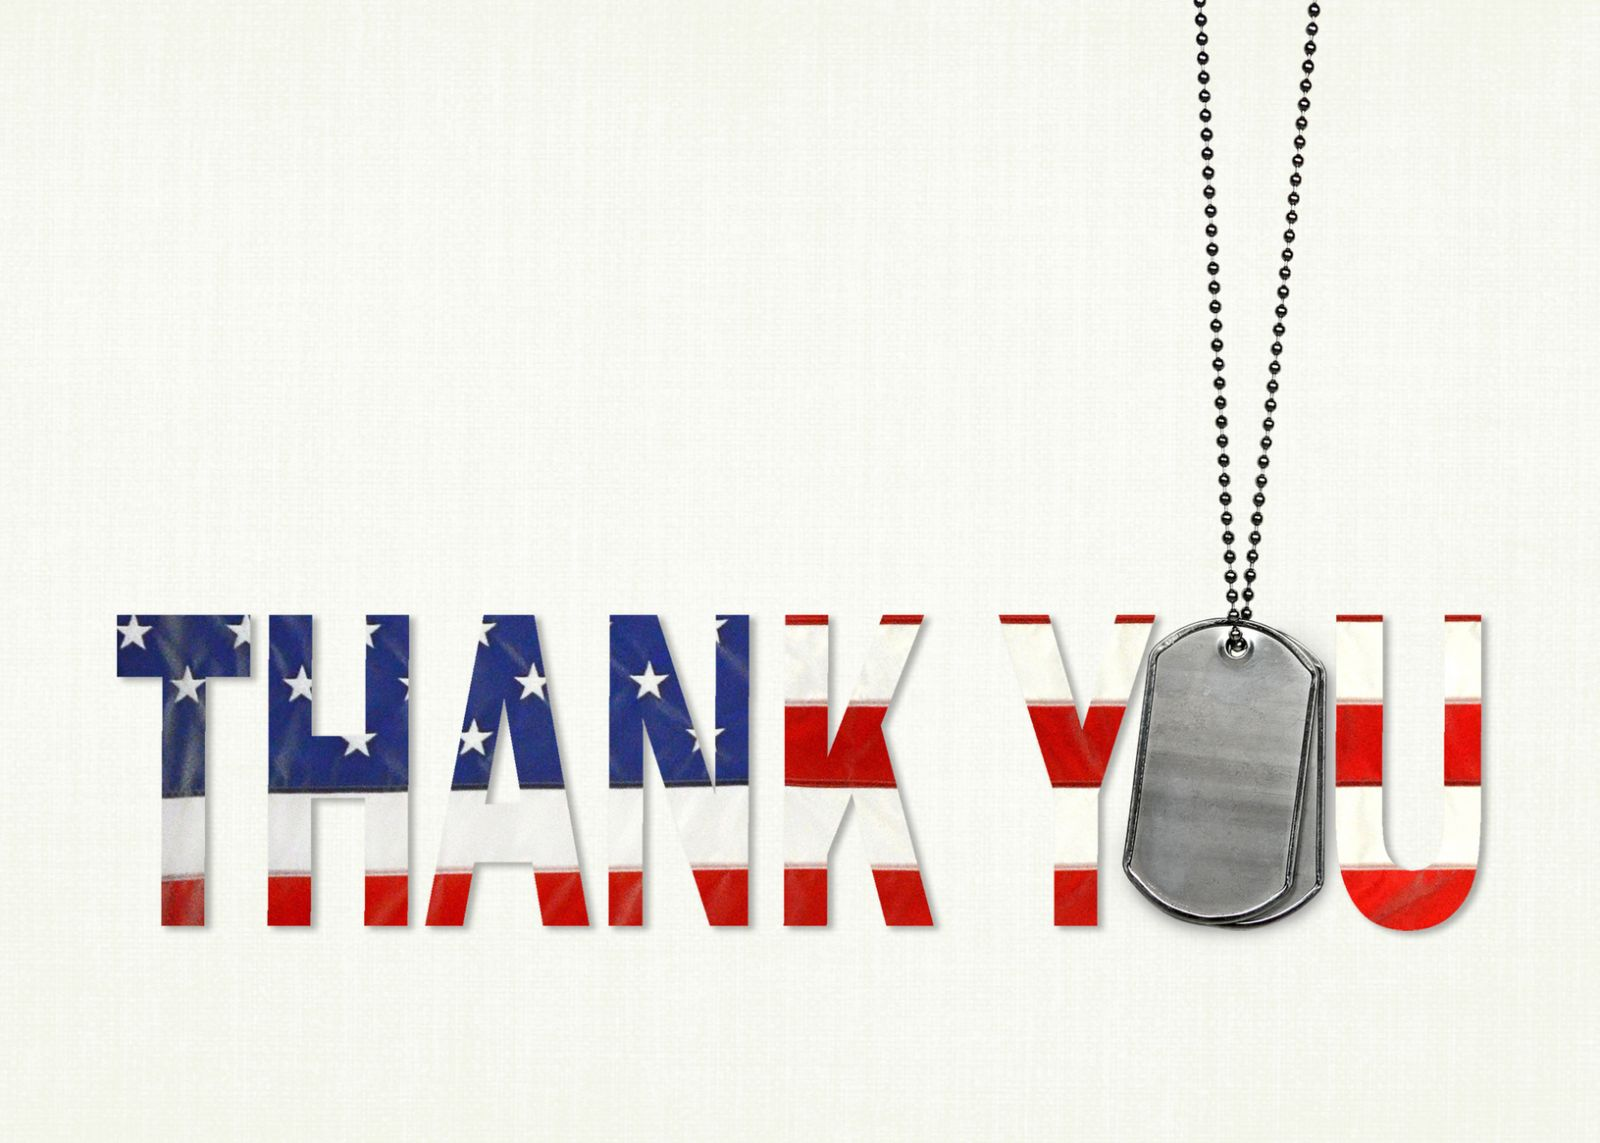 Small business, Small business heroes, Veterans Day